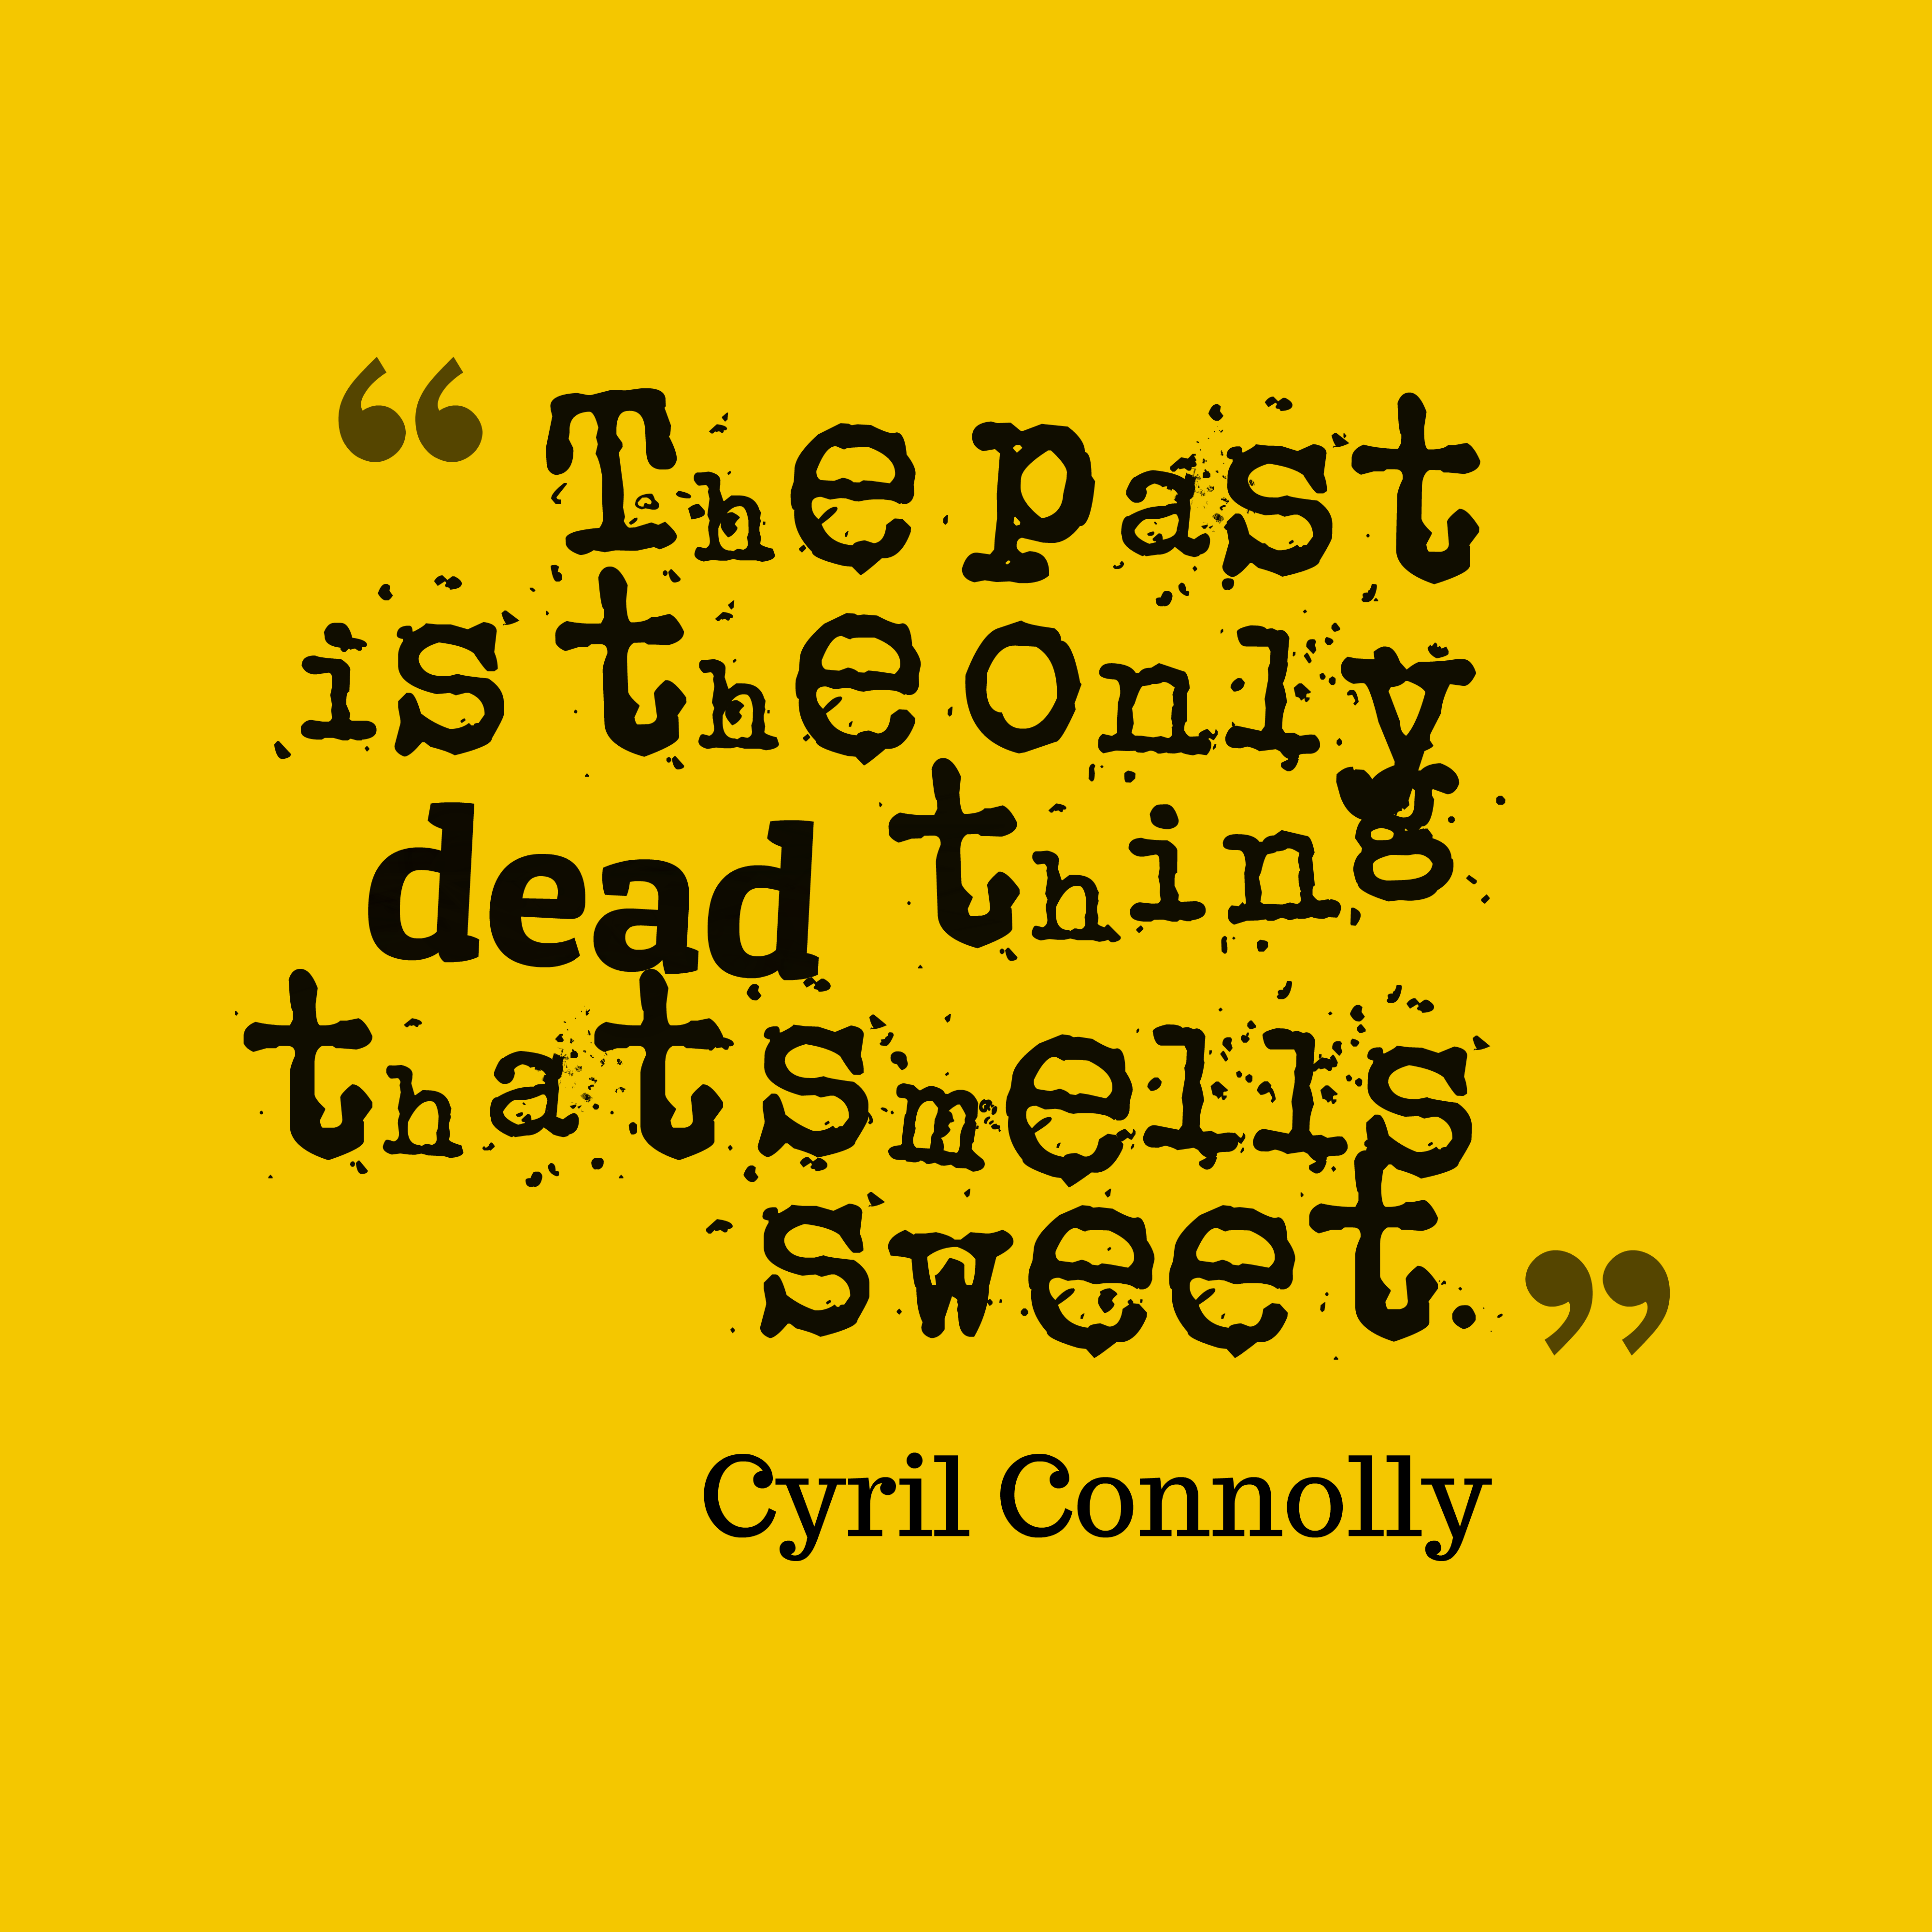 Cyril Connolly Quote About Past